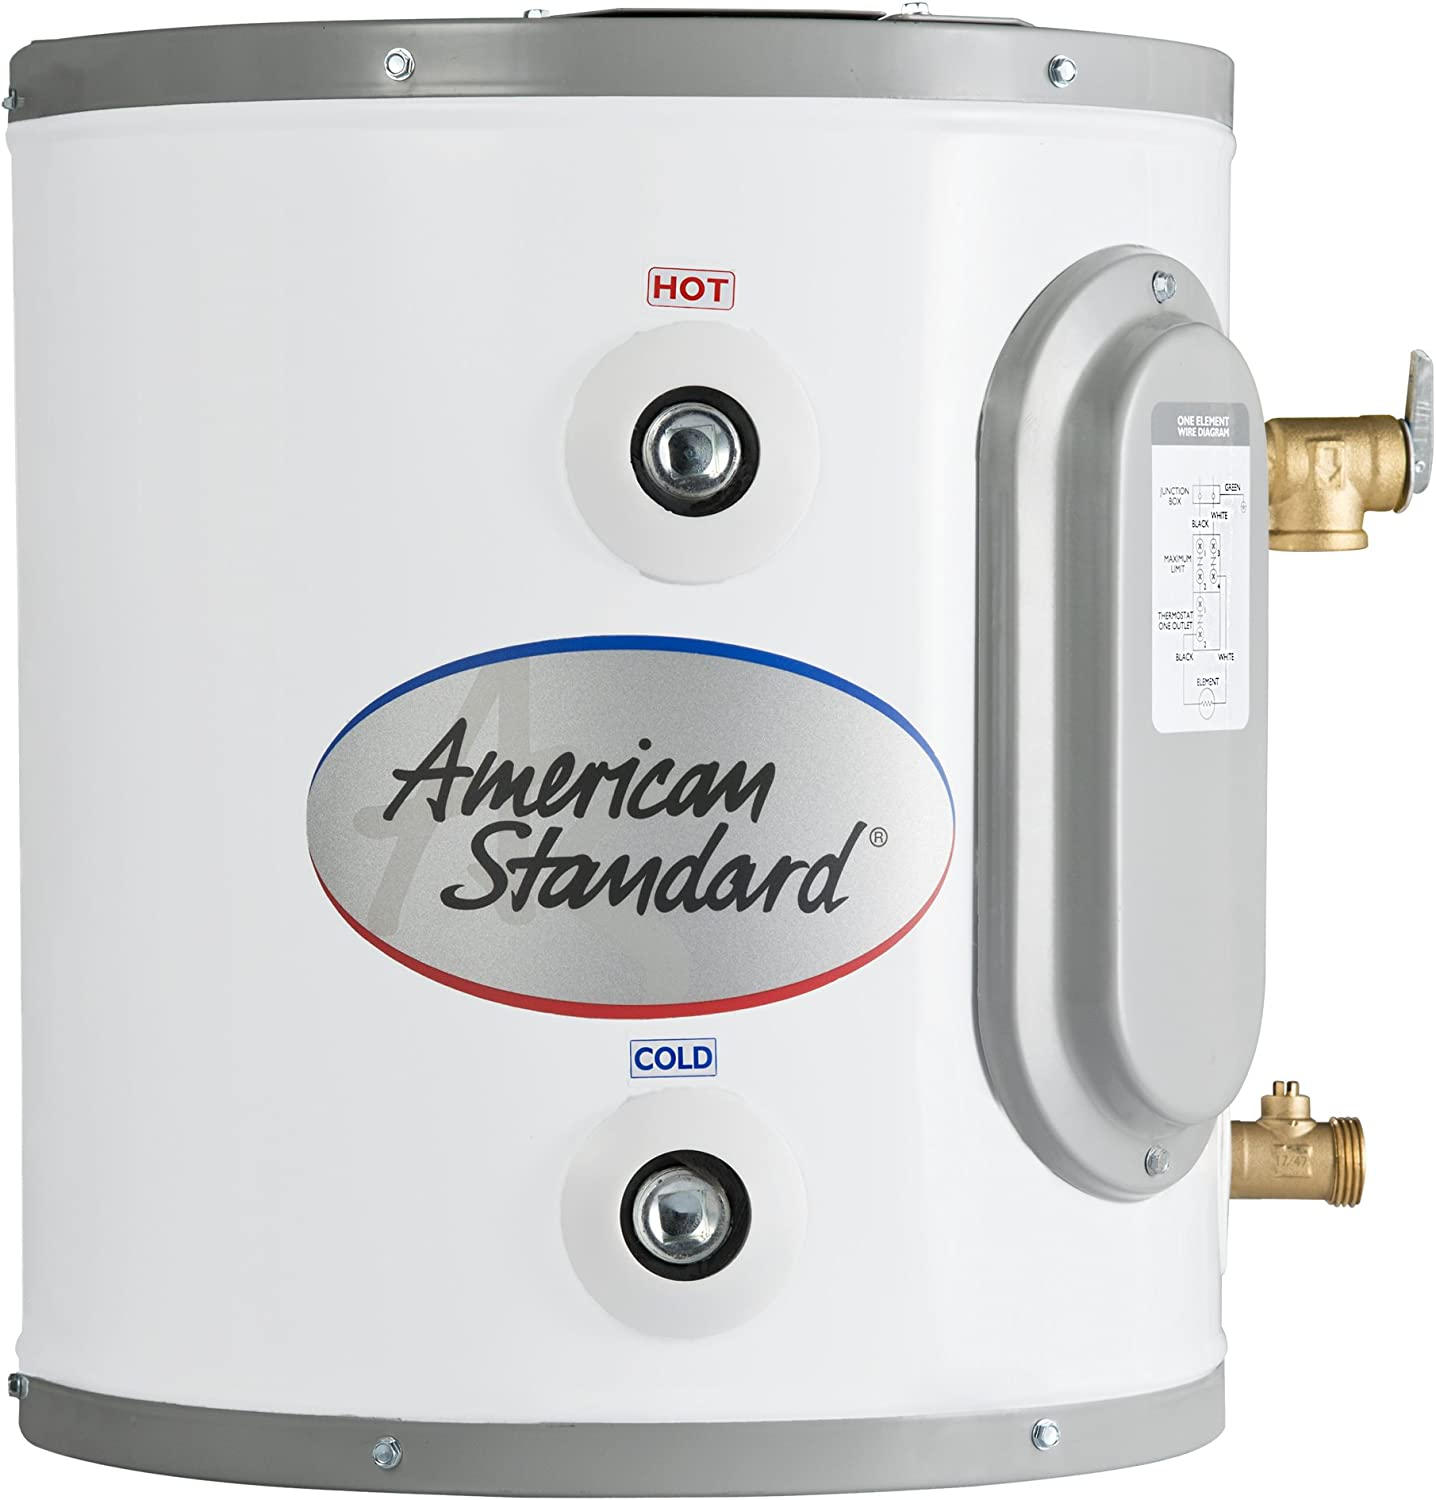 Amazon.com: American Standard ce-6-as 6 galones de punto de ...